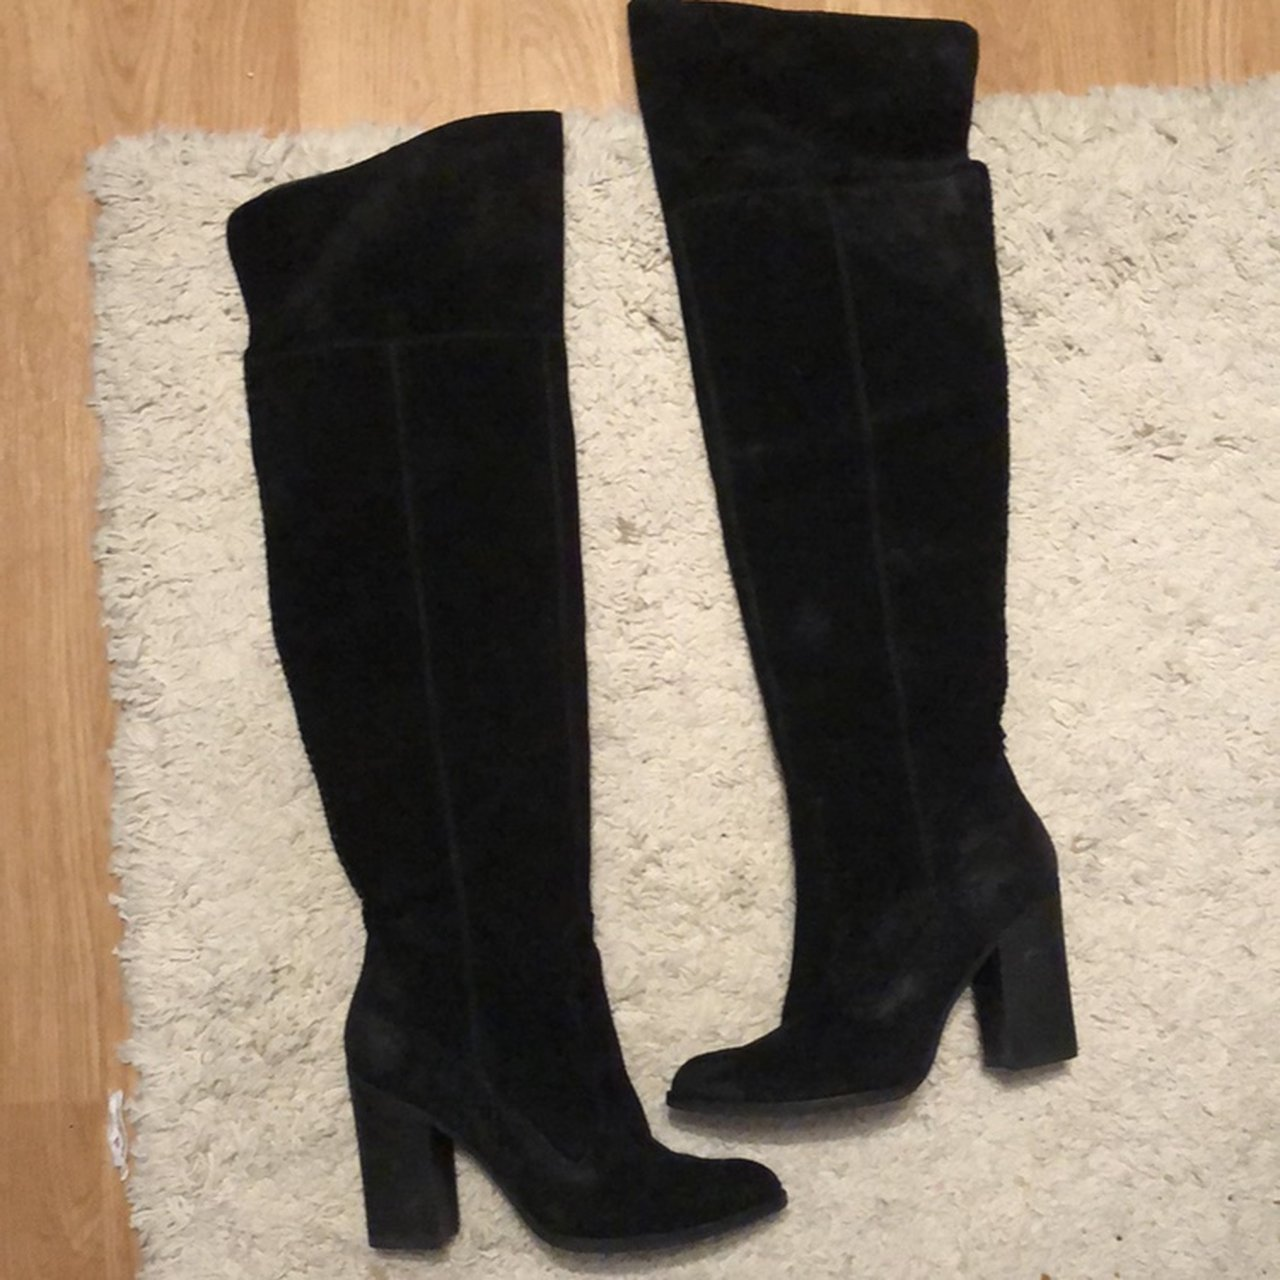 19322bea5da Dolce Vita Cliff Over the Knee Boots. Heavy duty suede over - Depop